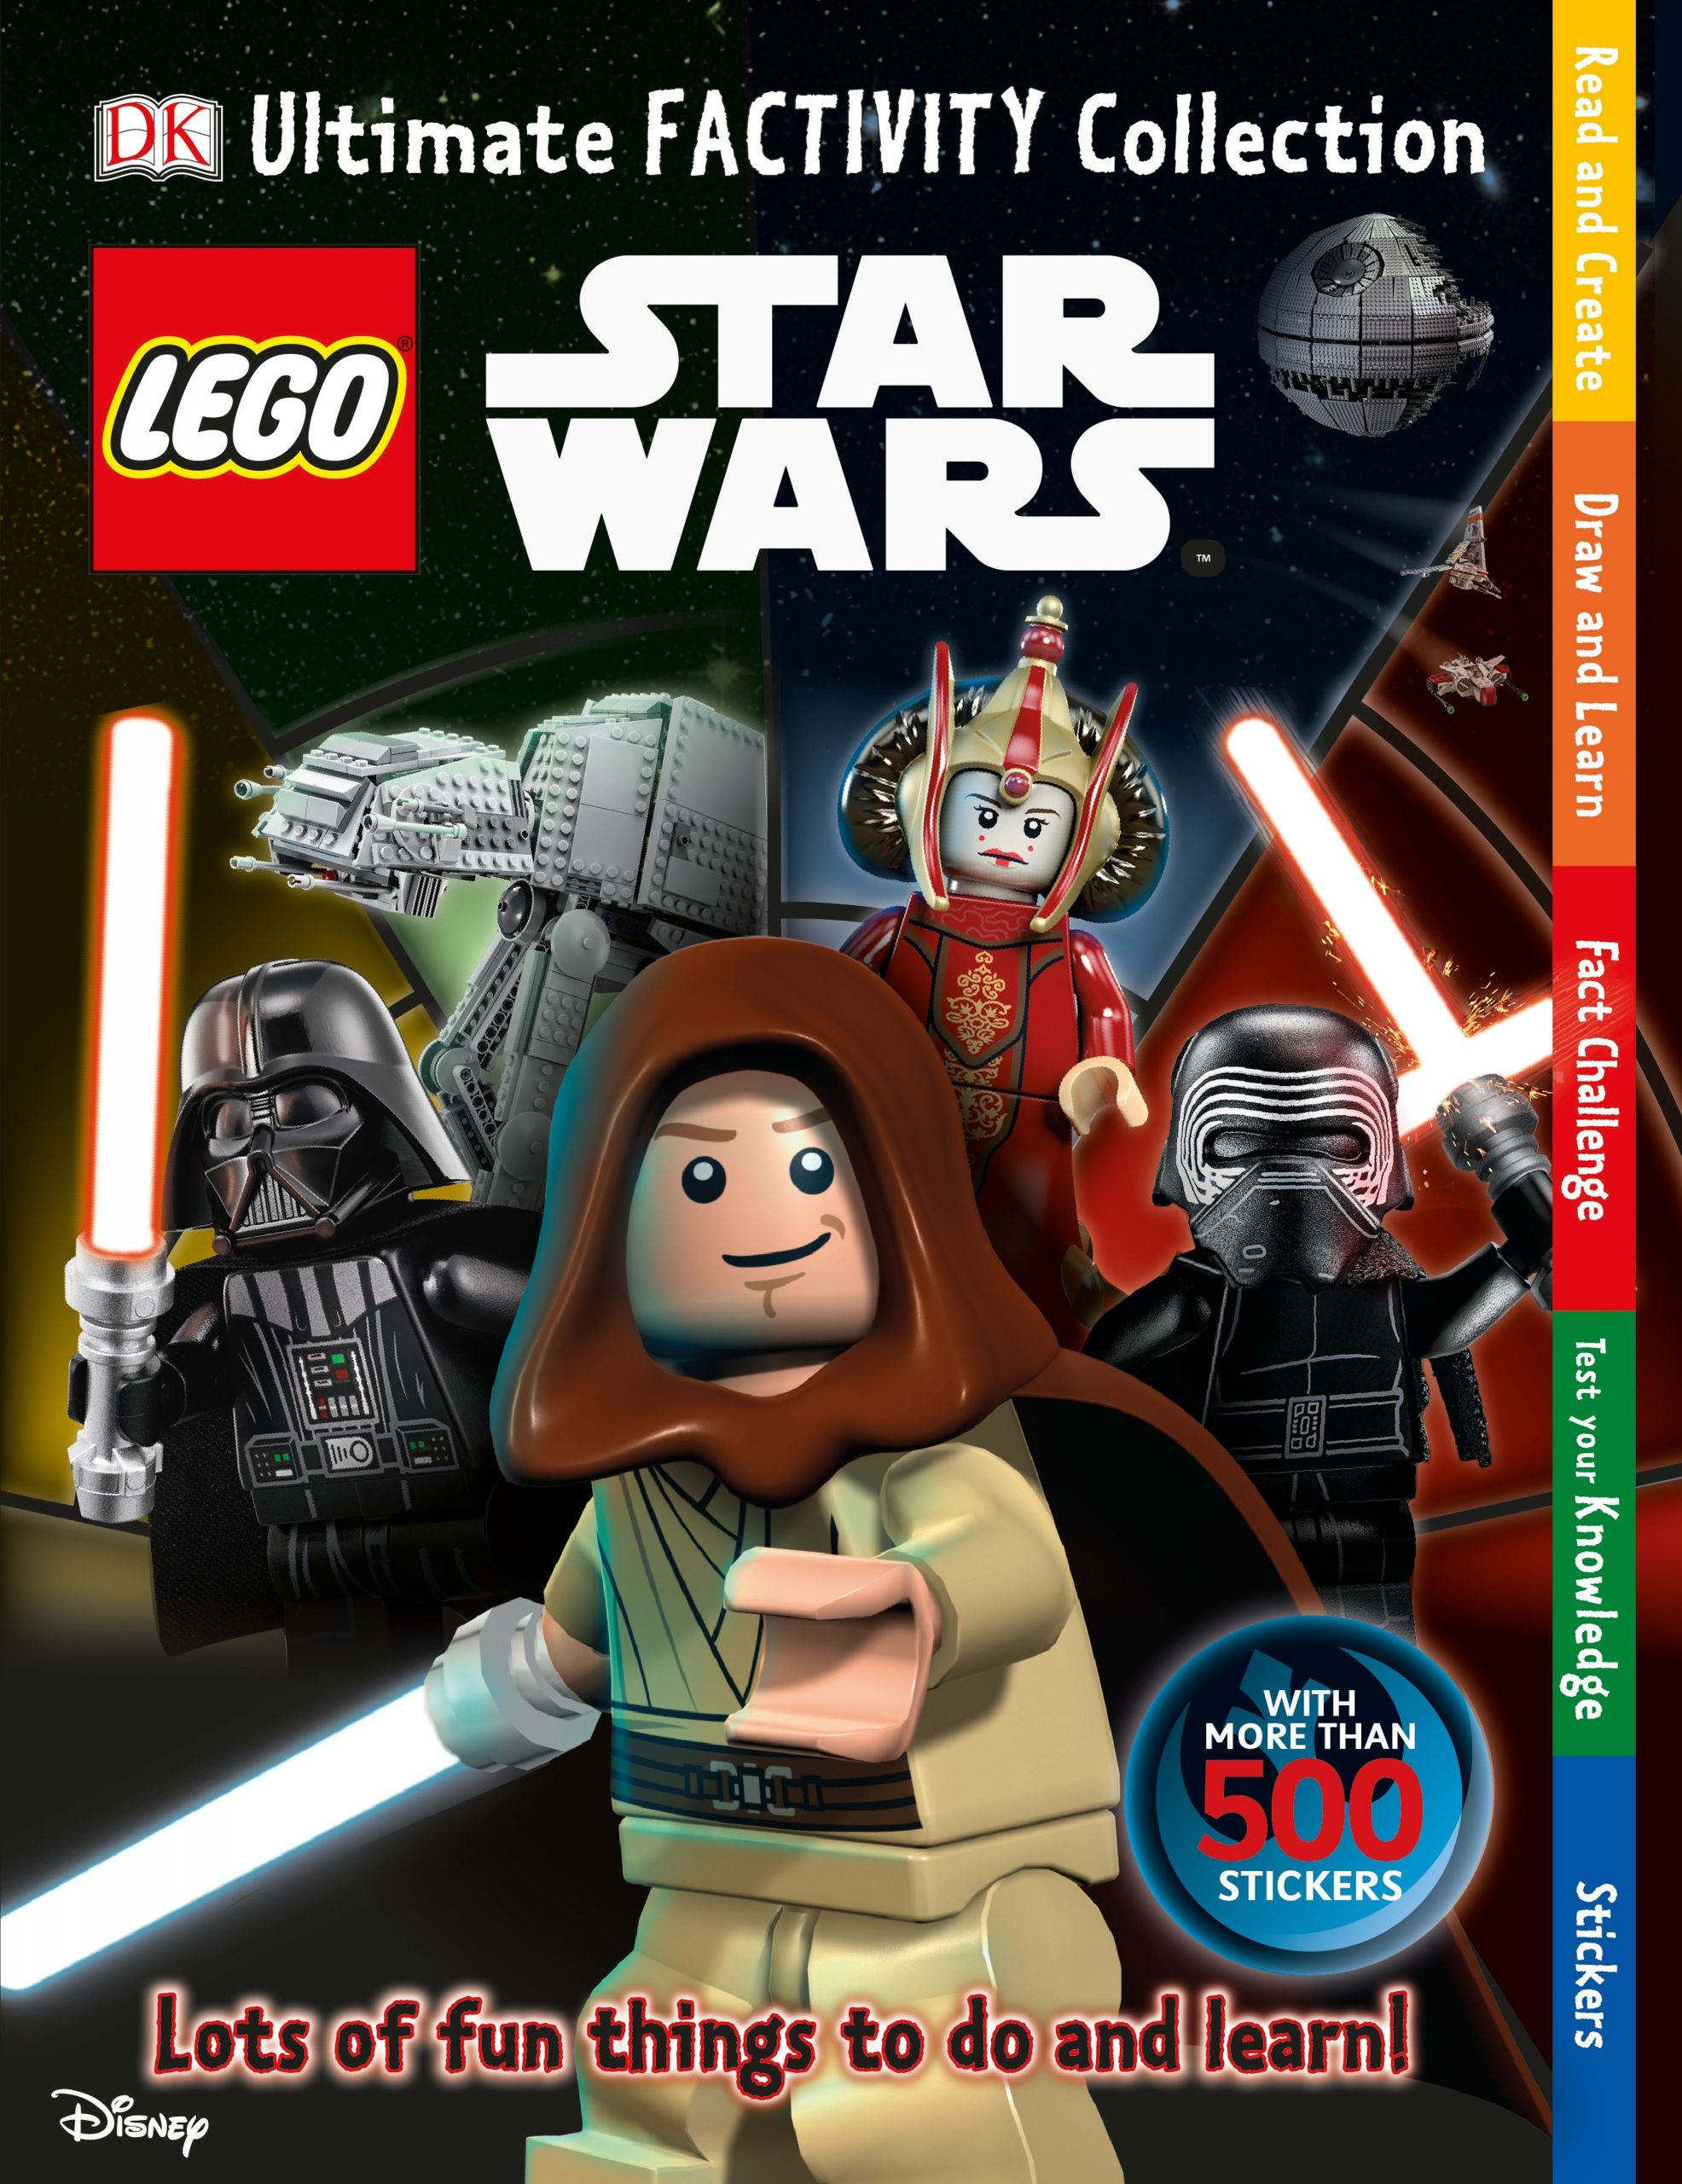 lego 5005149 star wars ultimate factivity collection scaled